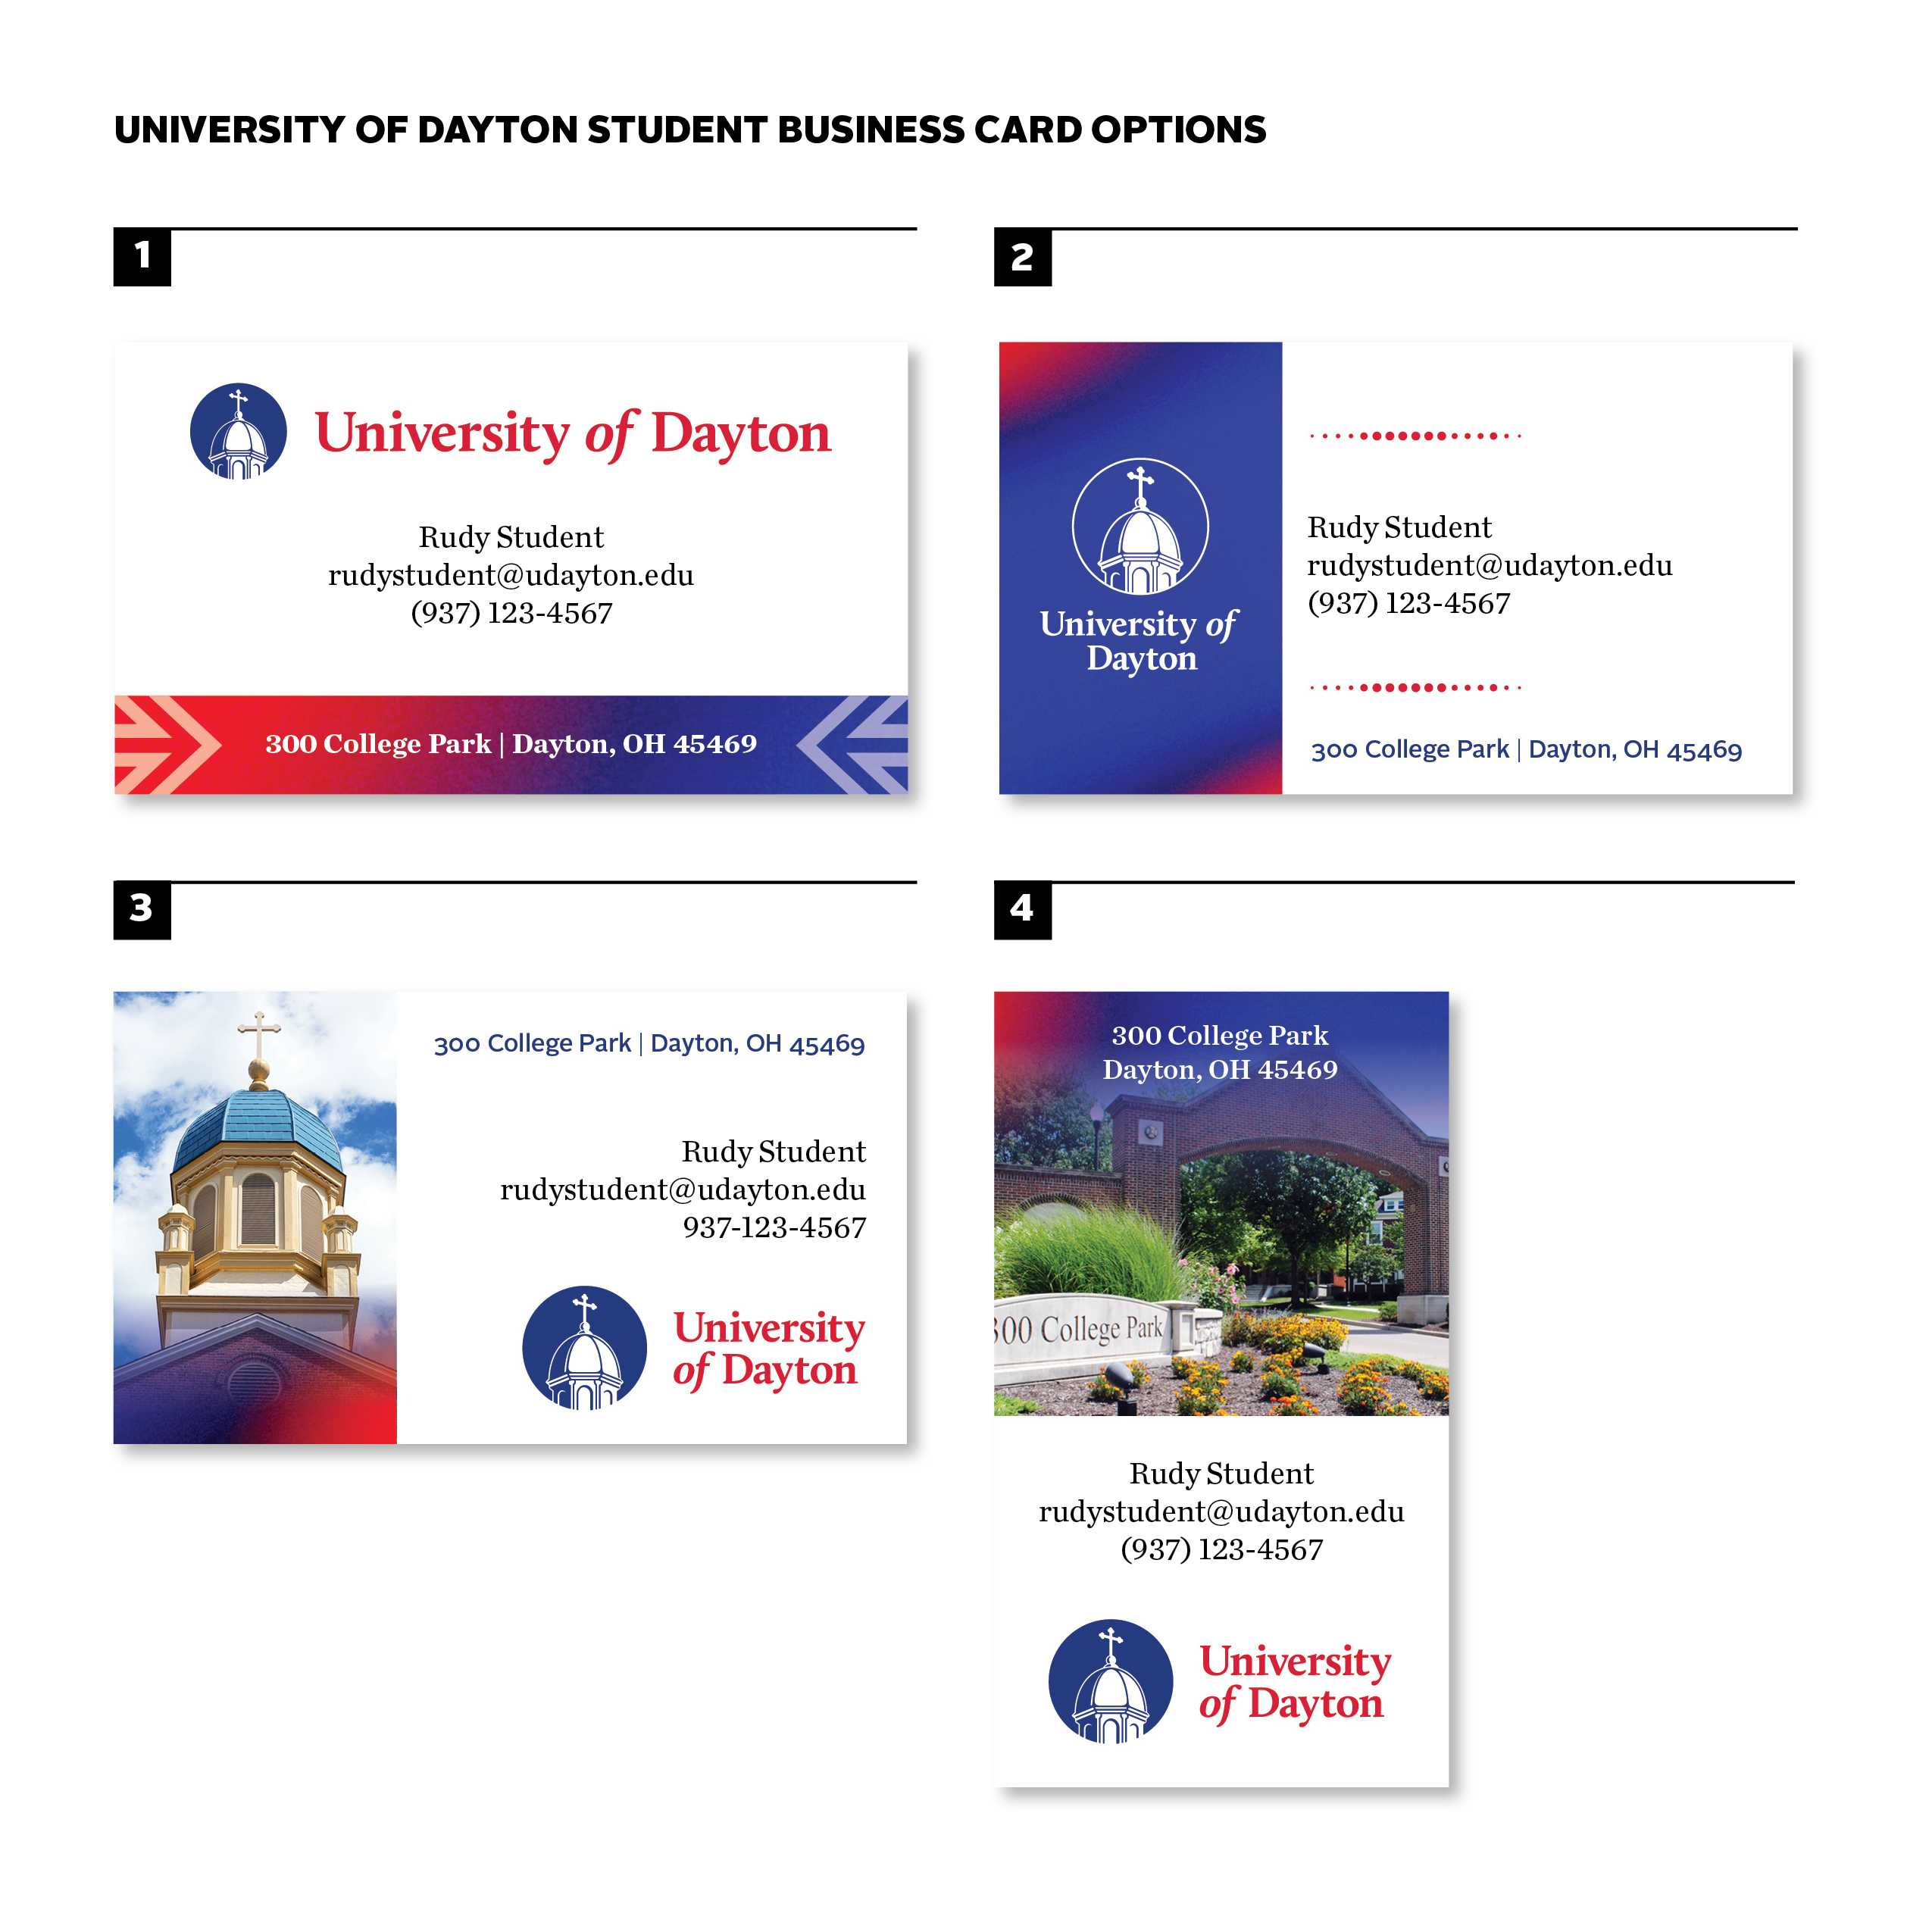 Business Cards : University Of Dayton, Ohio With Graduate Student Business Cards Template